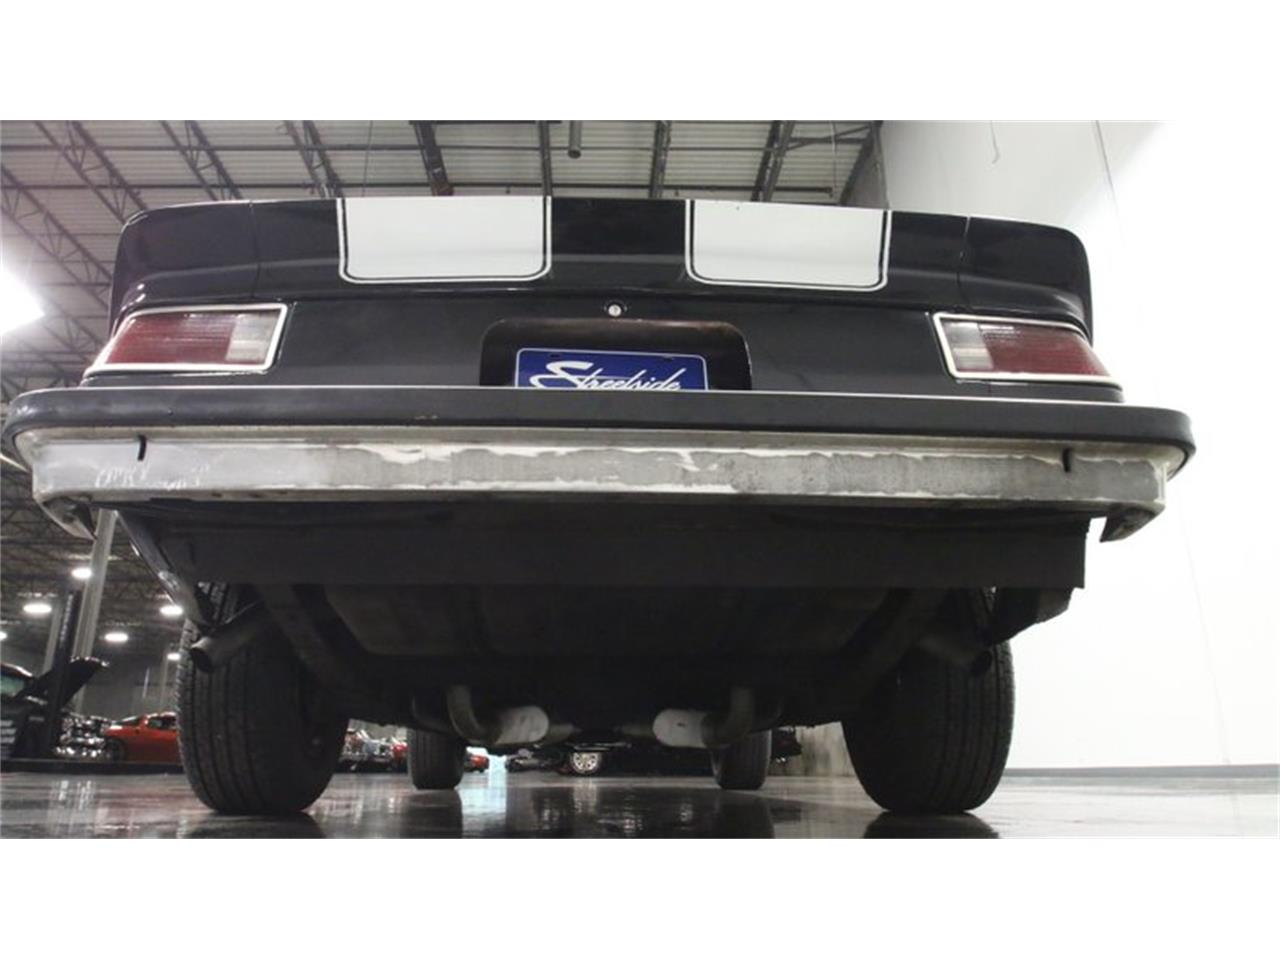 Large Picture of '75 Chevrolet Camaro located in Georgia - $13,995.00 Offered by Streetside Classics - Atlanta - QCUL